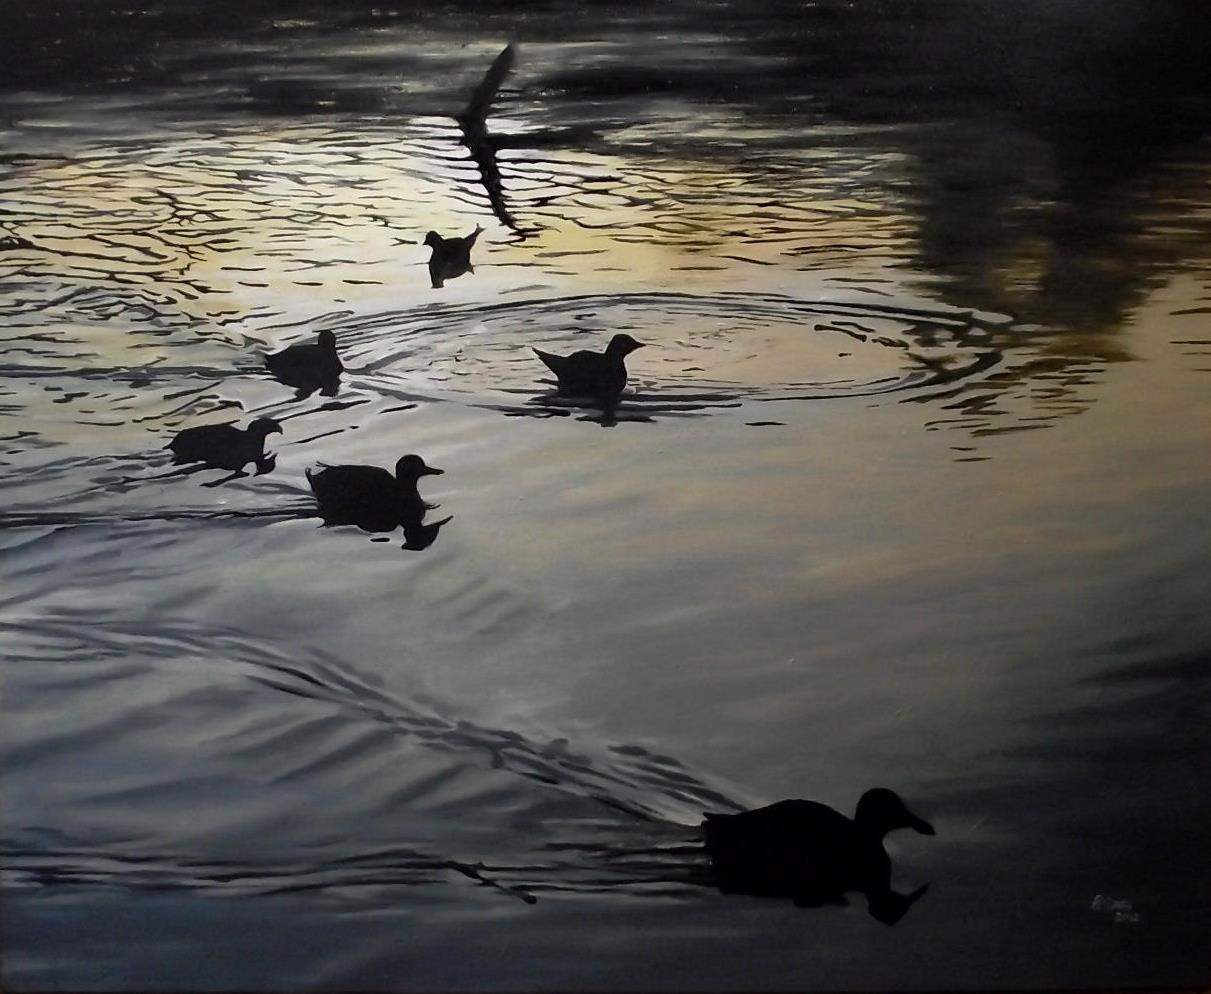 ducks_at_sunset__by_rvc89-d59xf0o.jpg